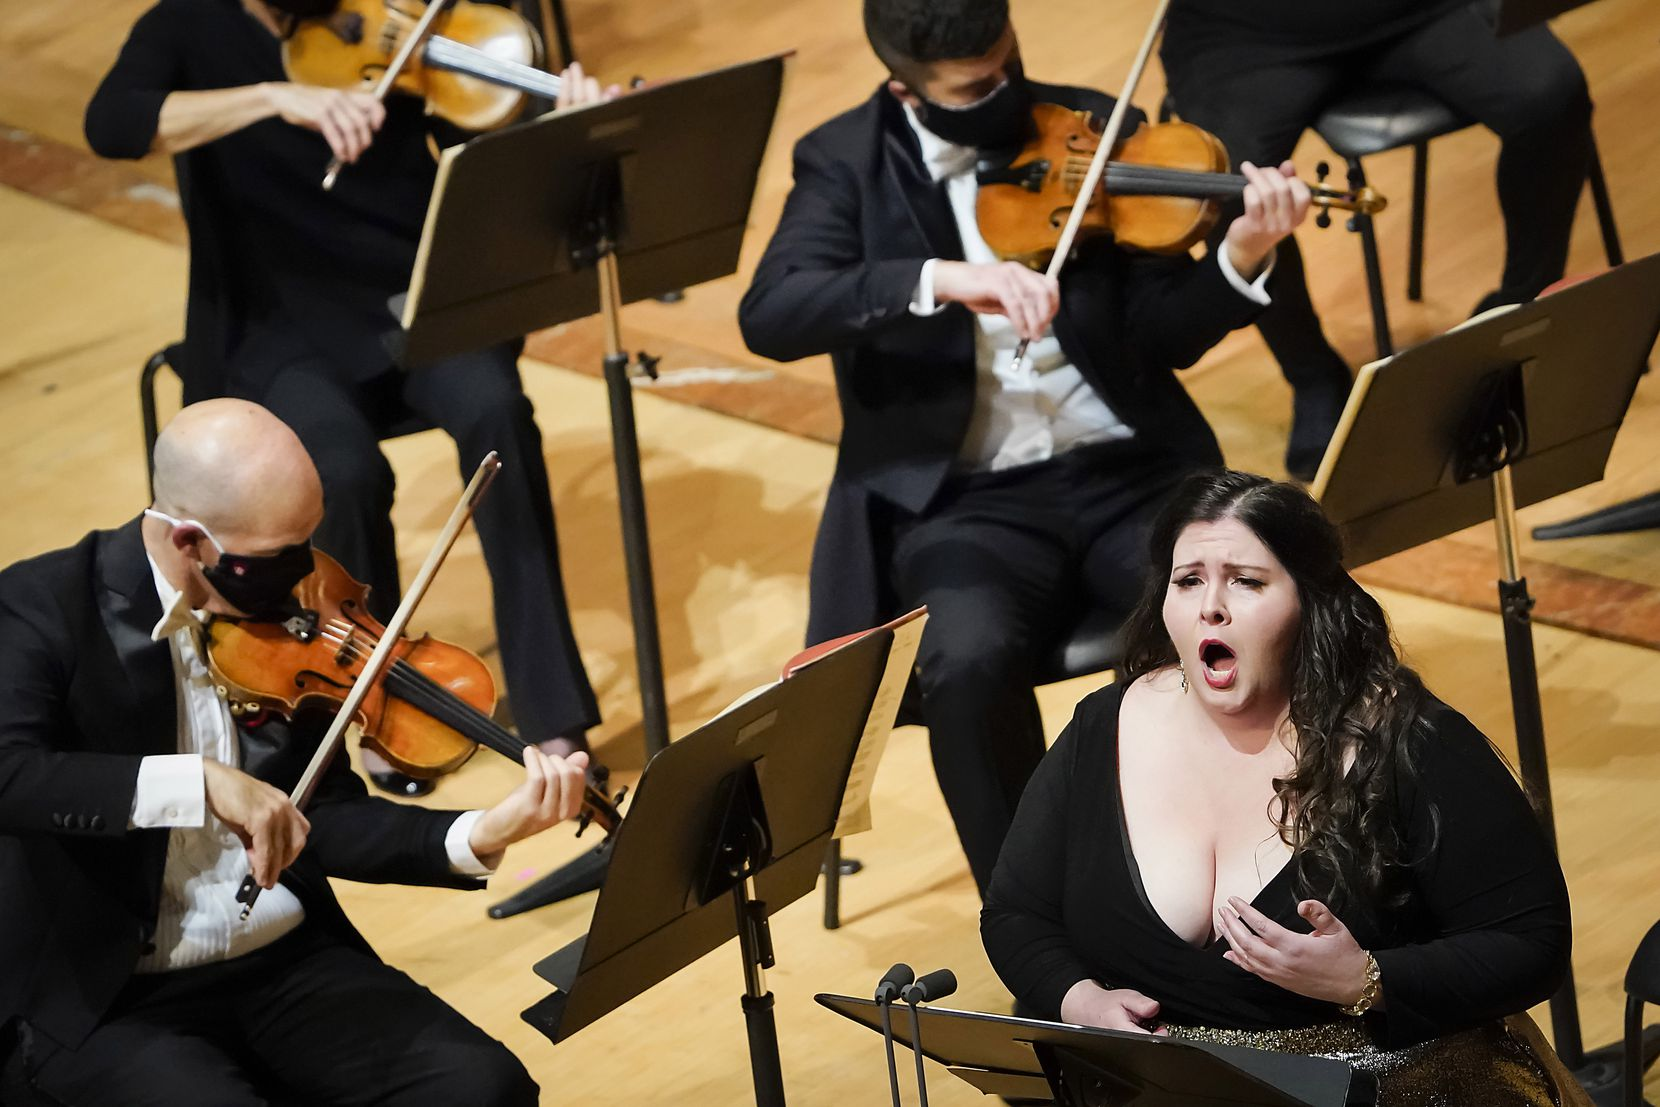 Soprano Angela Meade performs with the Dallas Symphony Orchestra in concert at the Meyerson Symphony Center on Thursday, Oct. 29, 2020, in Dallas.